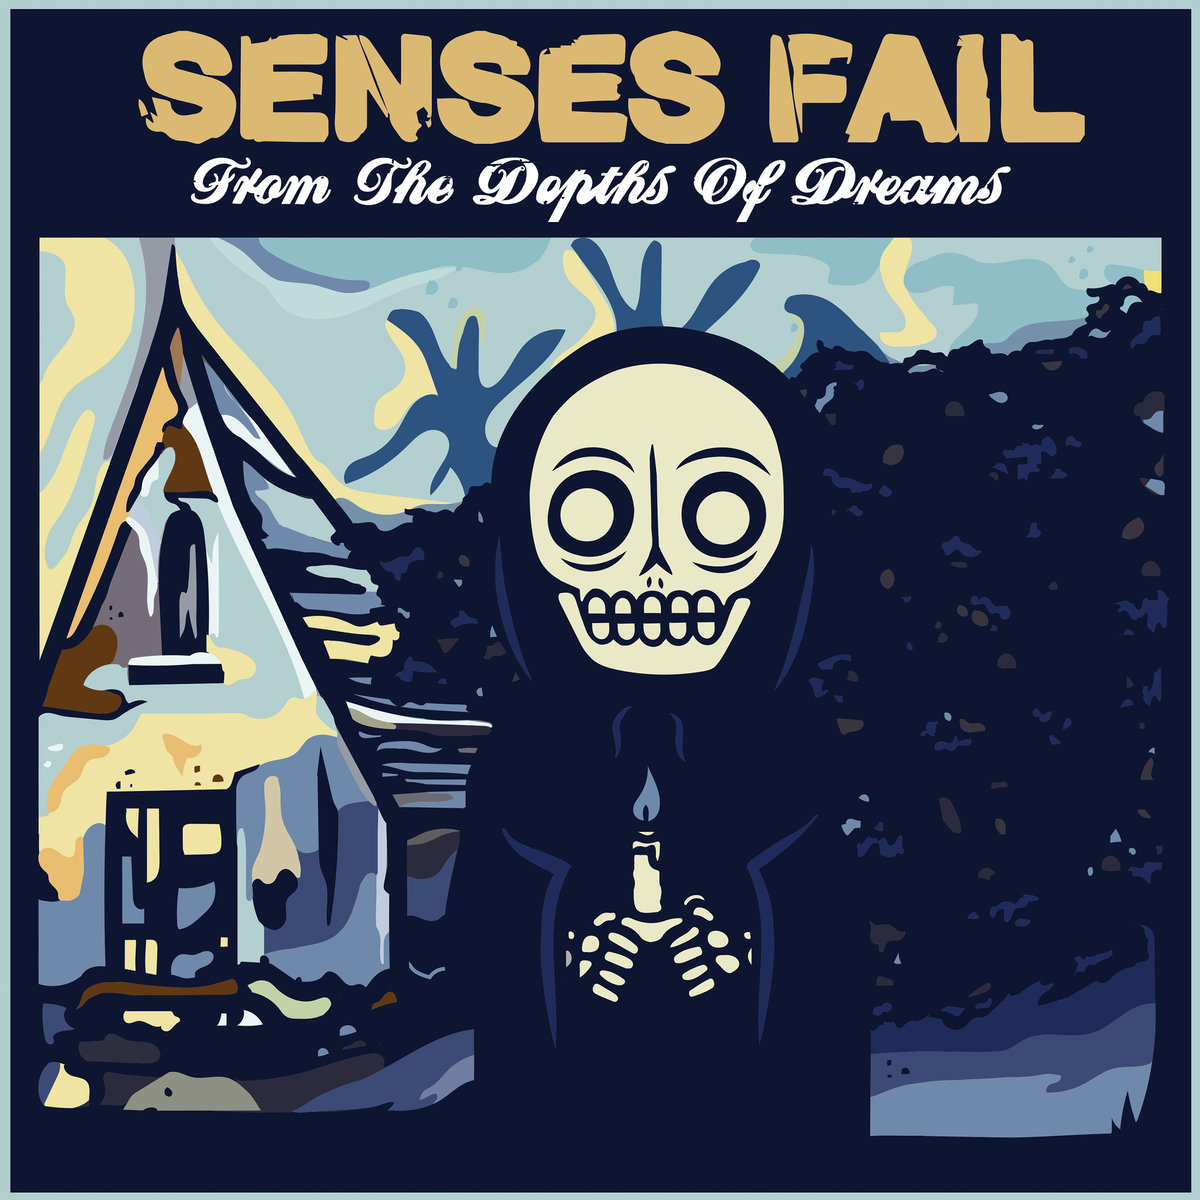 New Senses Fail Album for Review